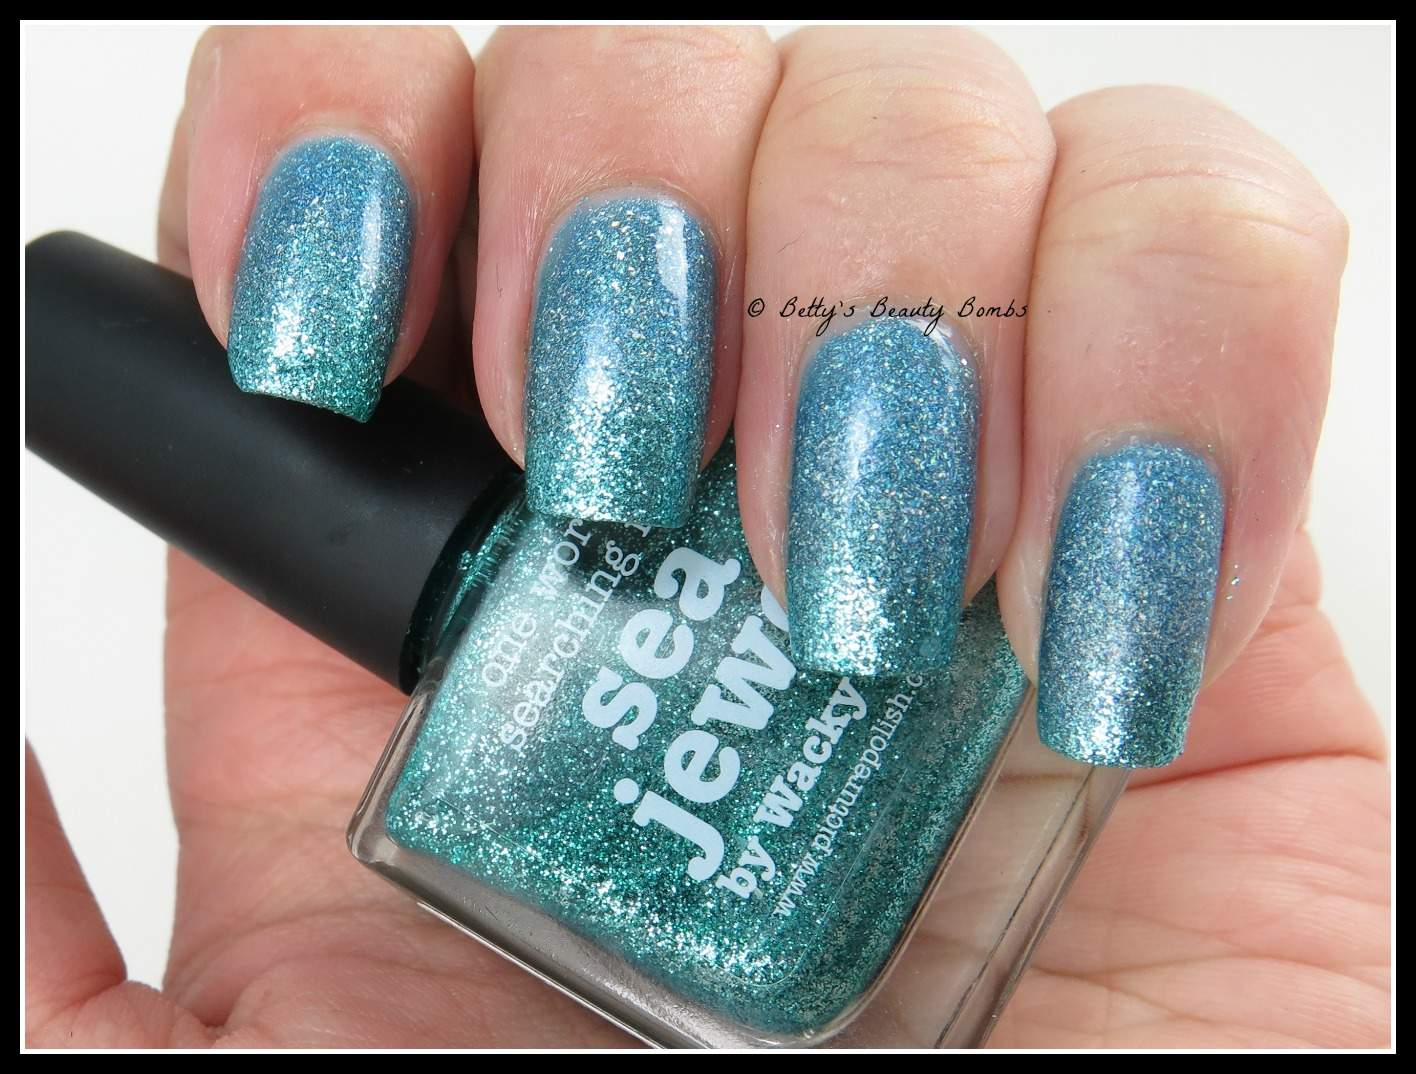 Gradient-Nail-Art - Ocean Nail Art For Challenge Your Nail Art - Lazy Betty